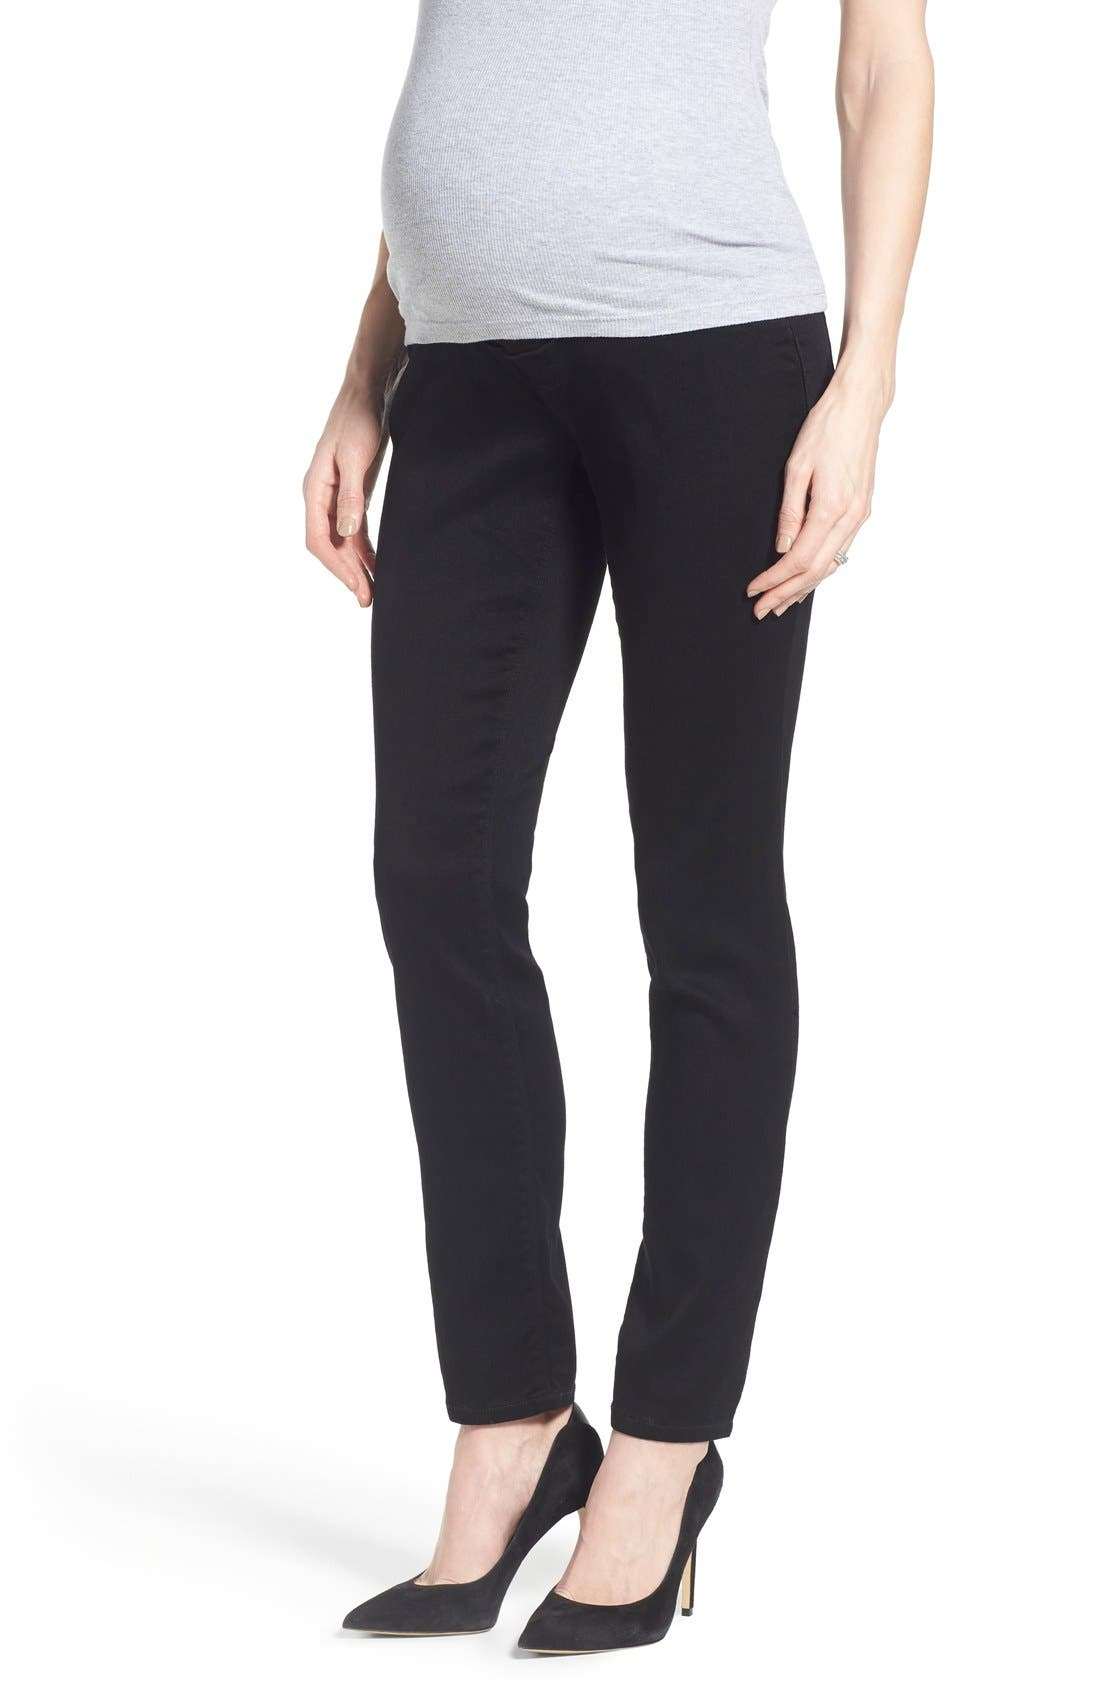 1822 Denim 'Butter' Maternity Skinny Jeans